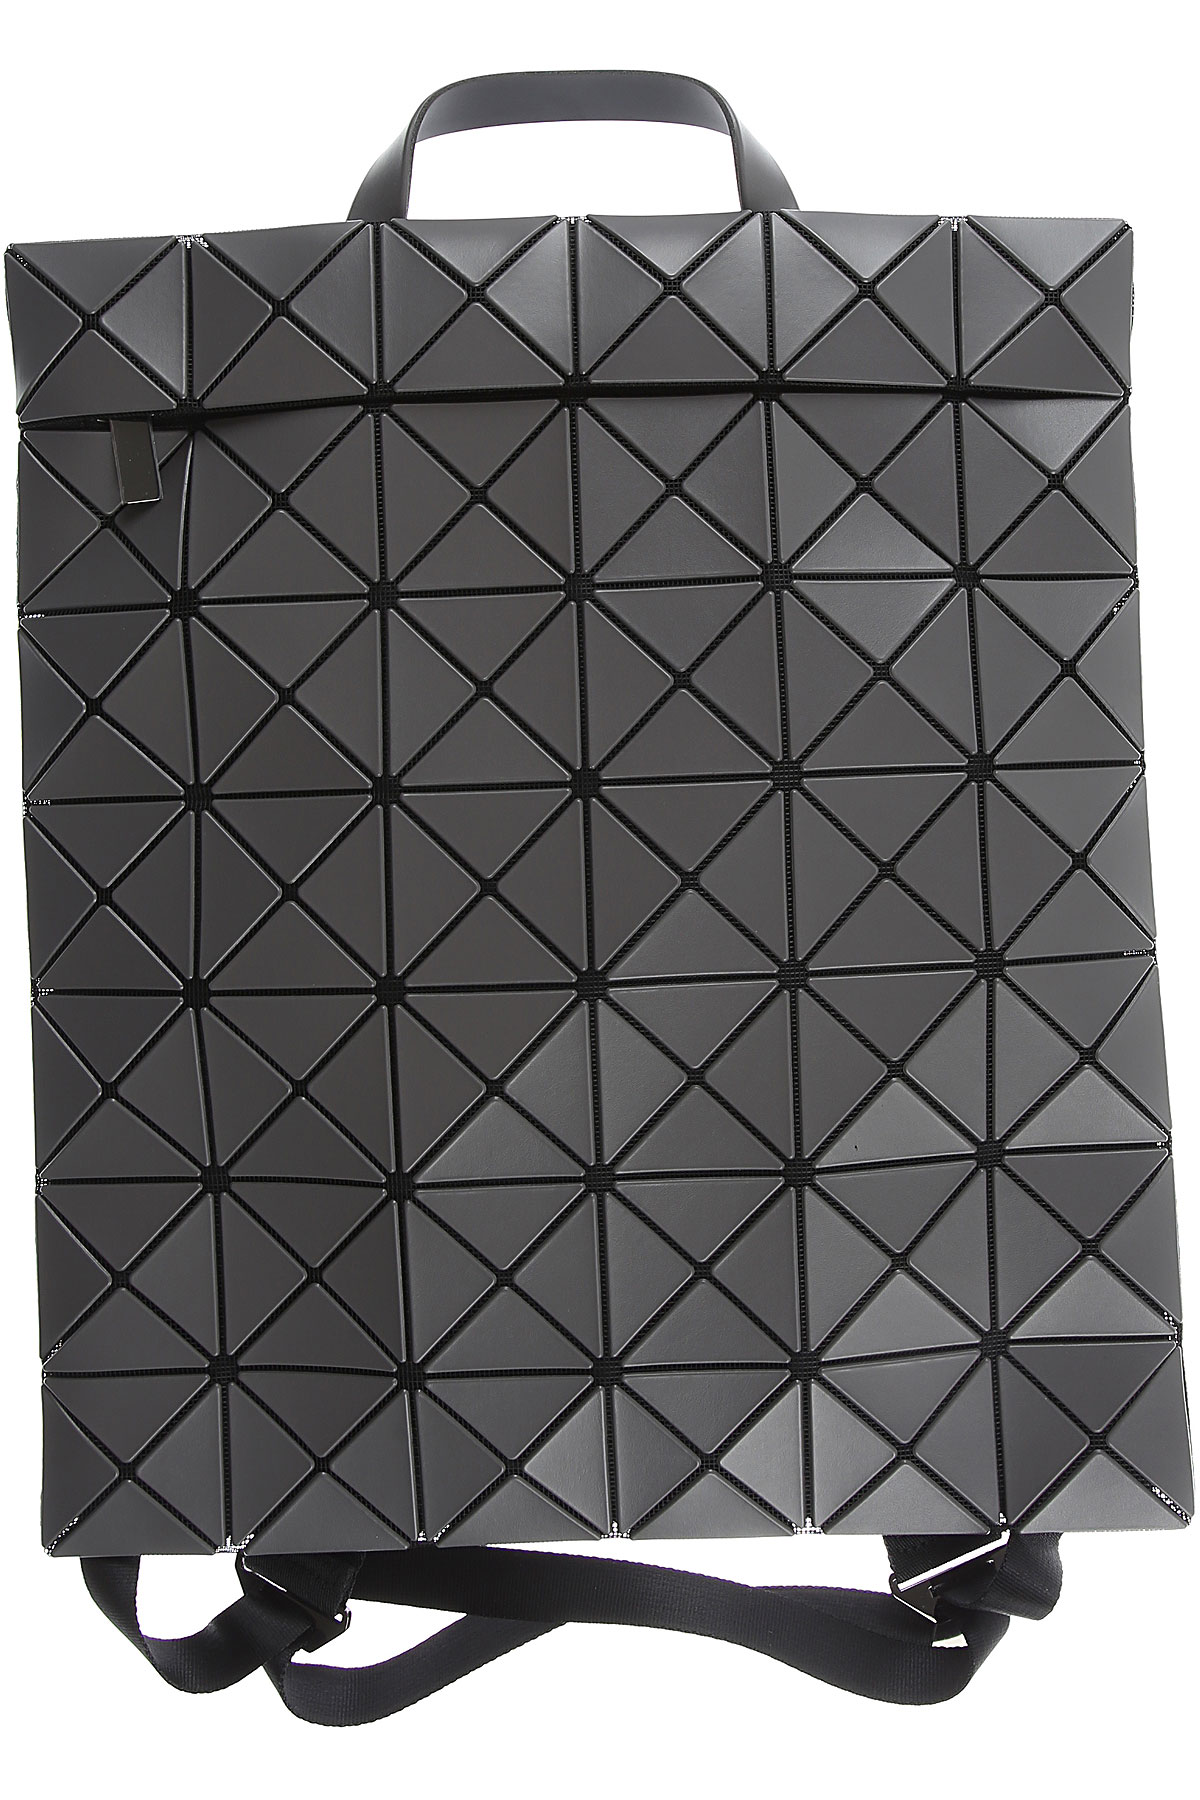 Image of Issey Miyake Backpack for Women, Charcoal, Leather, 2017